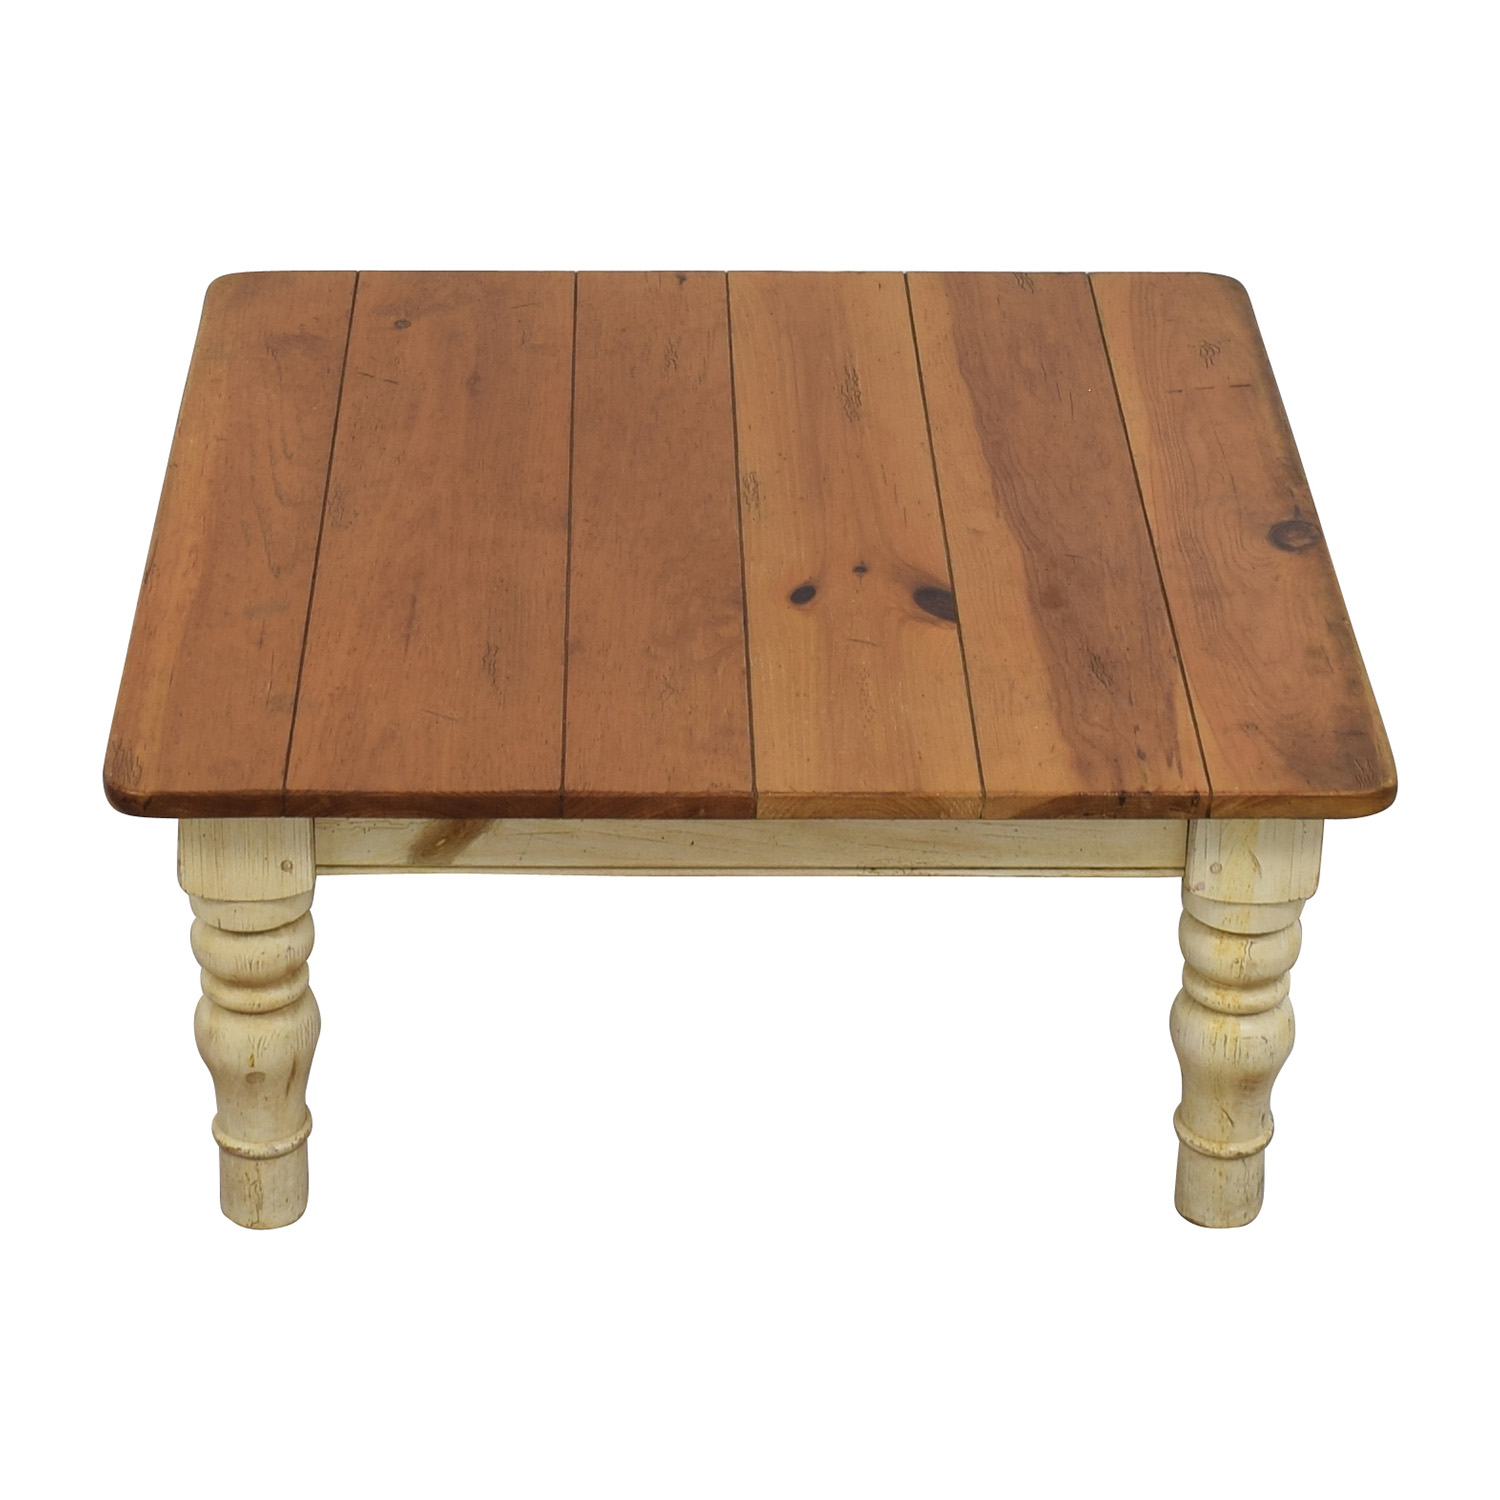 Ethan Allen Ethan Allen Farmhouse Cherry Wood Coffee Table For Sale